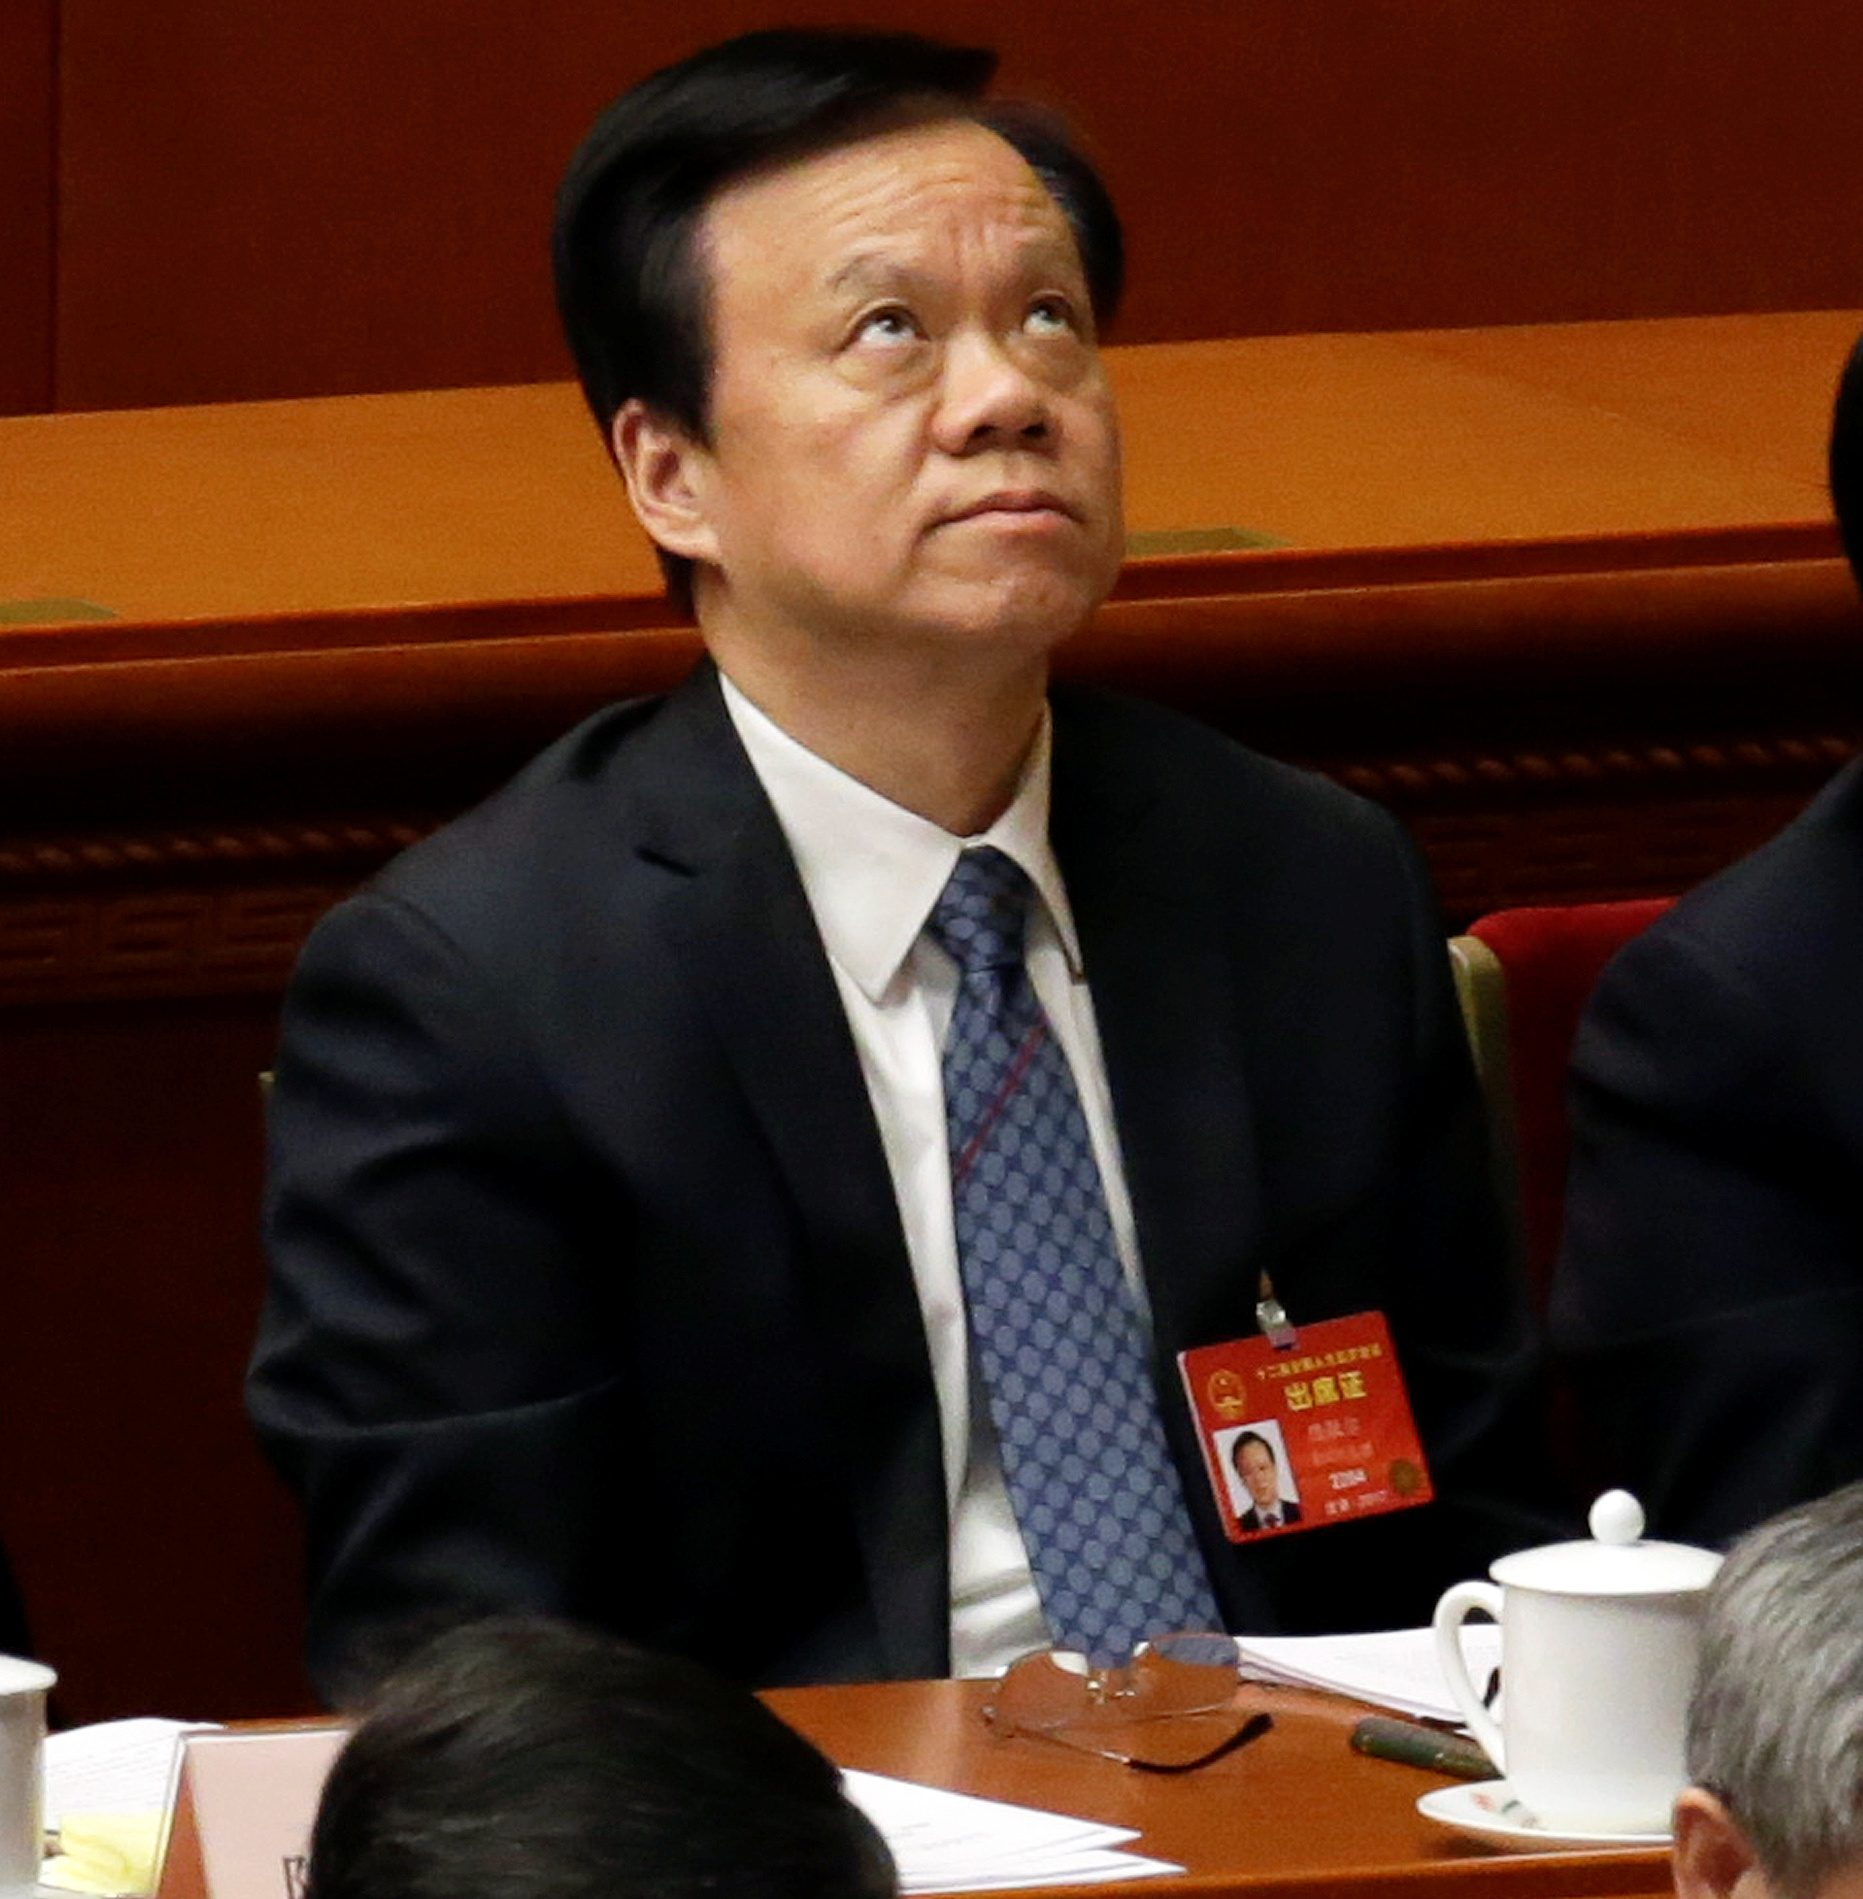 Guizhou Communist Party boss Chen Miner (C) attends the second plenary session of the National People's Congress (NPC) at the Great Hall of the People in Beijing, China, March 8, 2017.